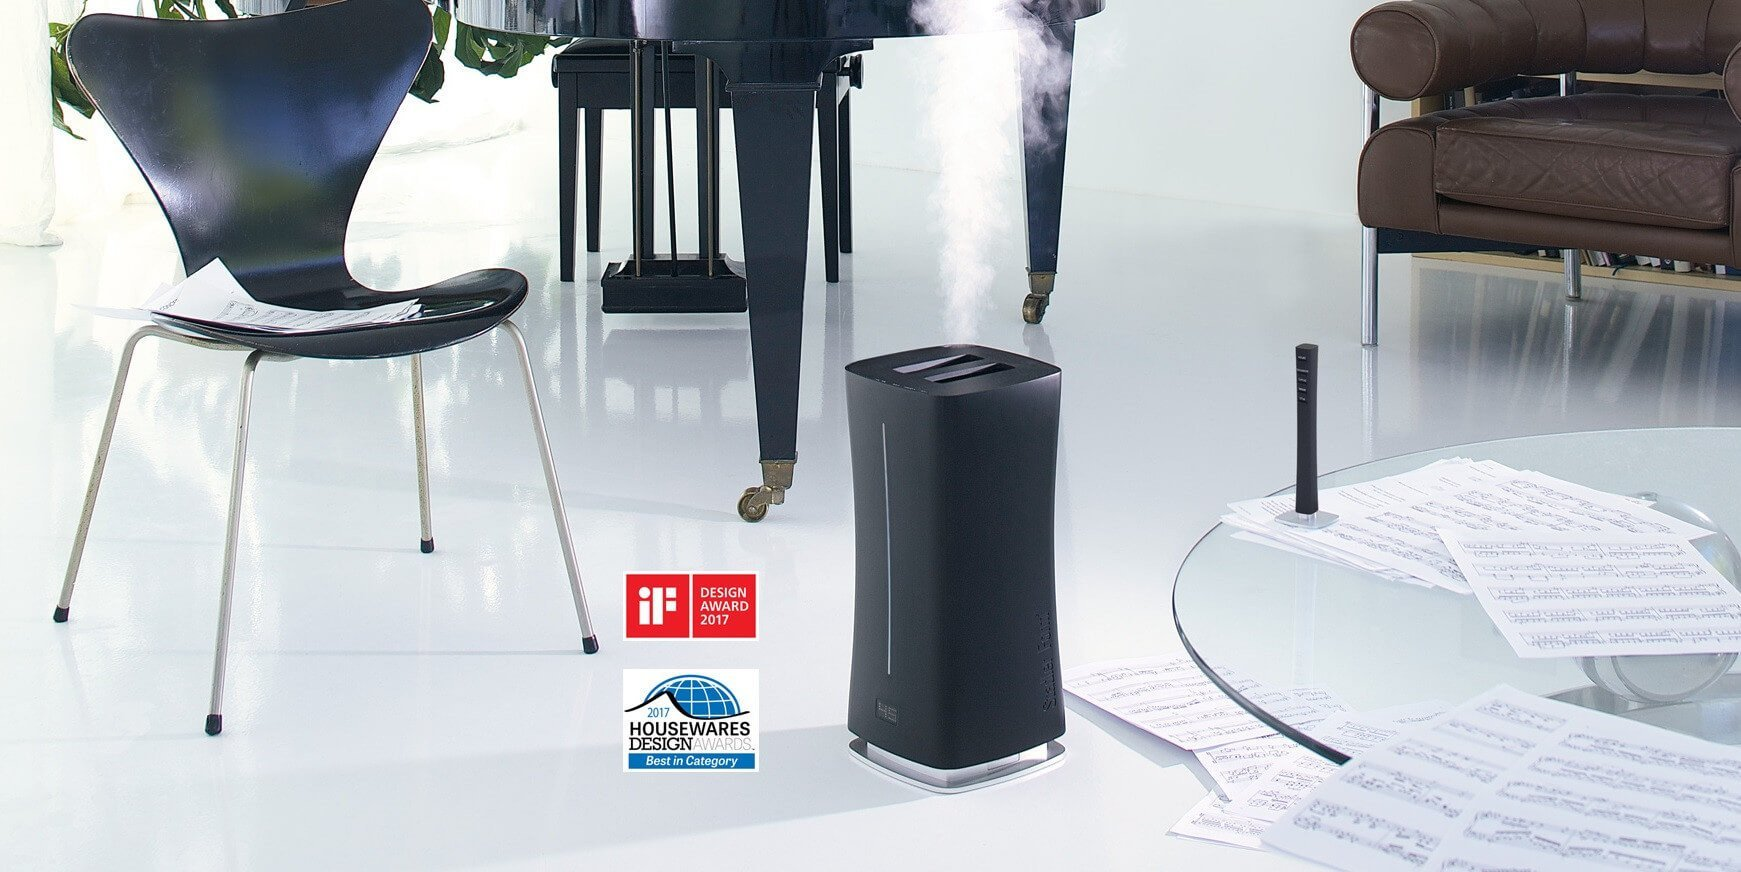 Humidifiers, Air Purifiers, Fans & Heaters, Pizza Oven for Home - EcoBrandsNow - Canada